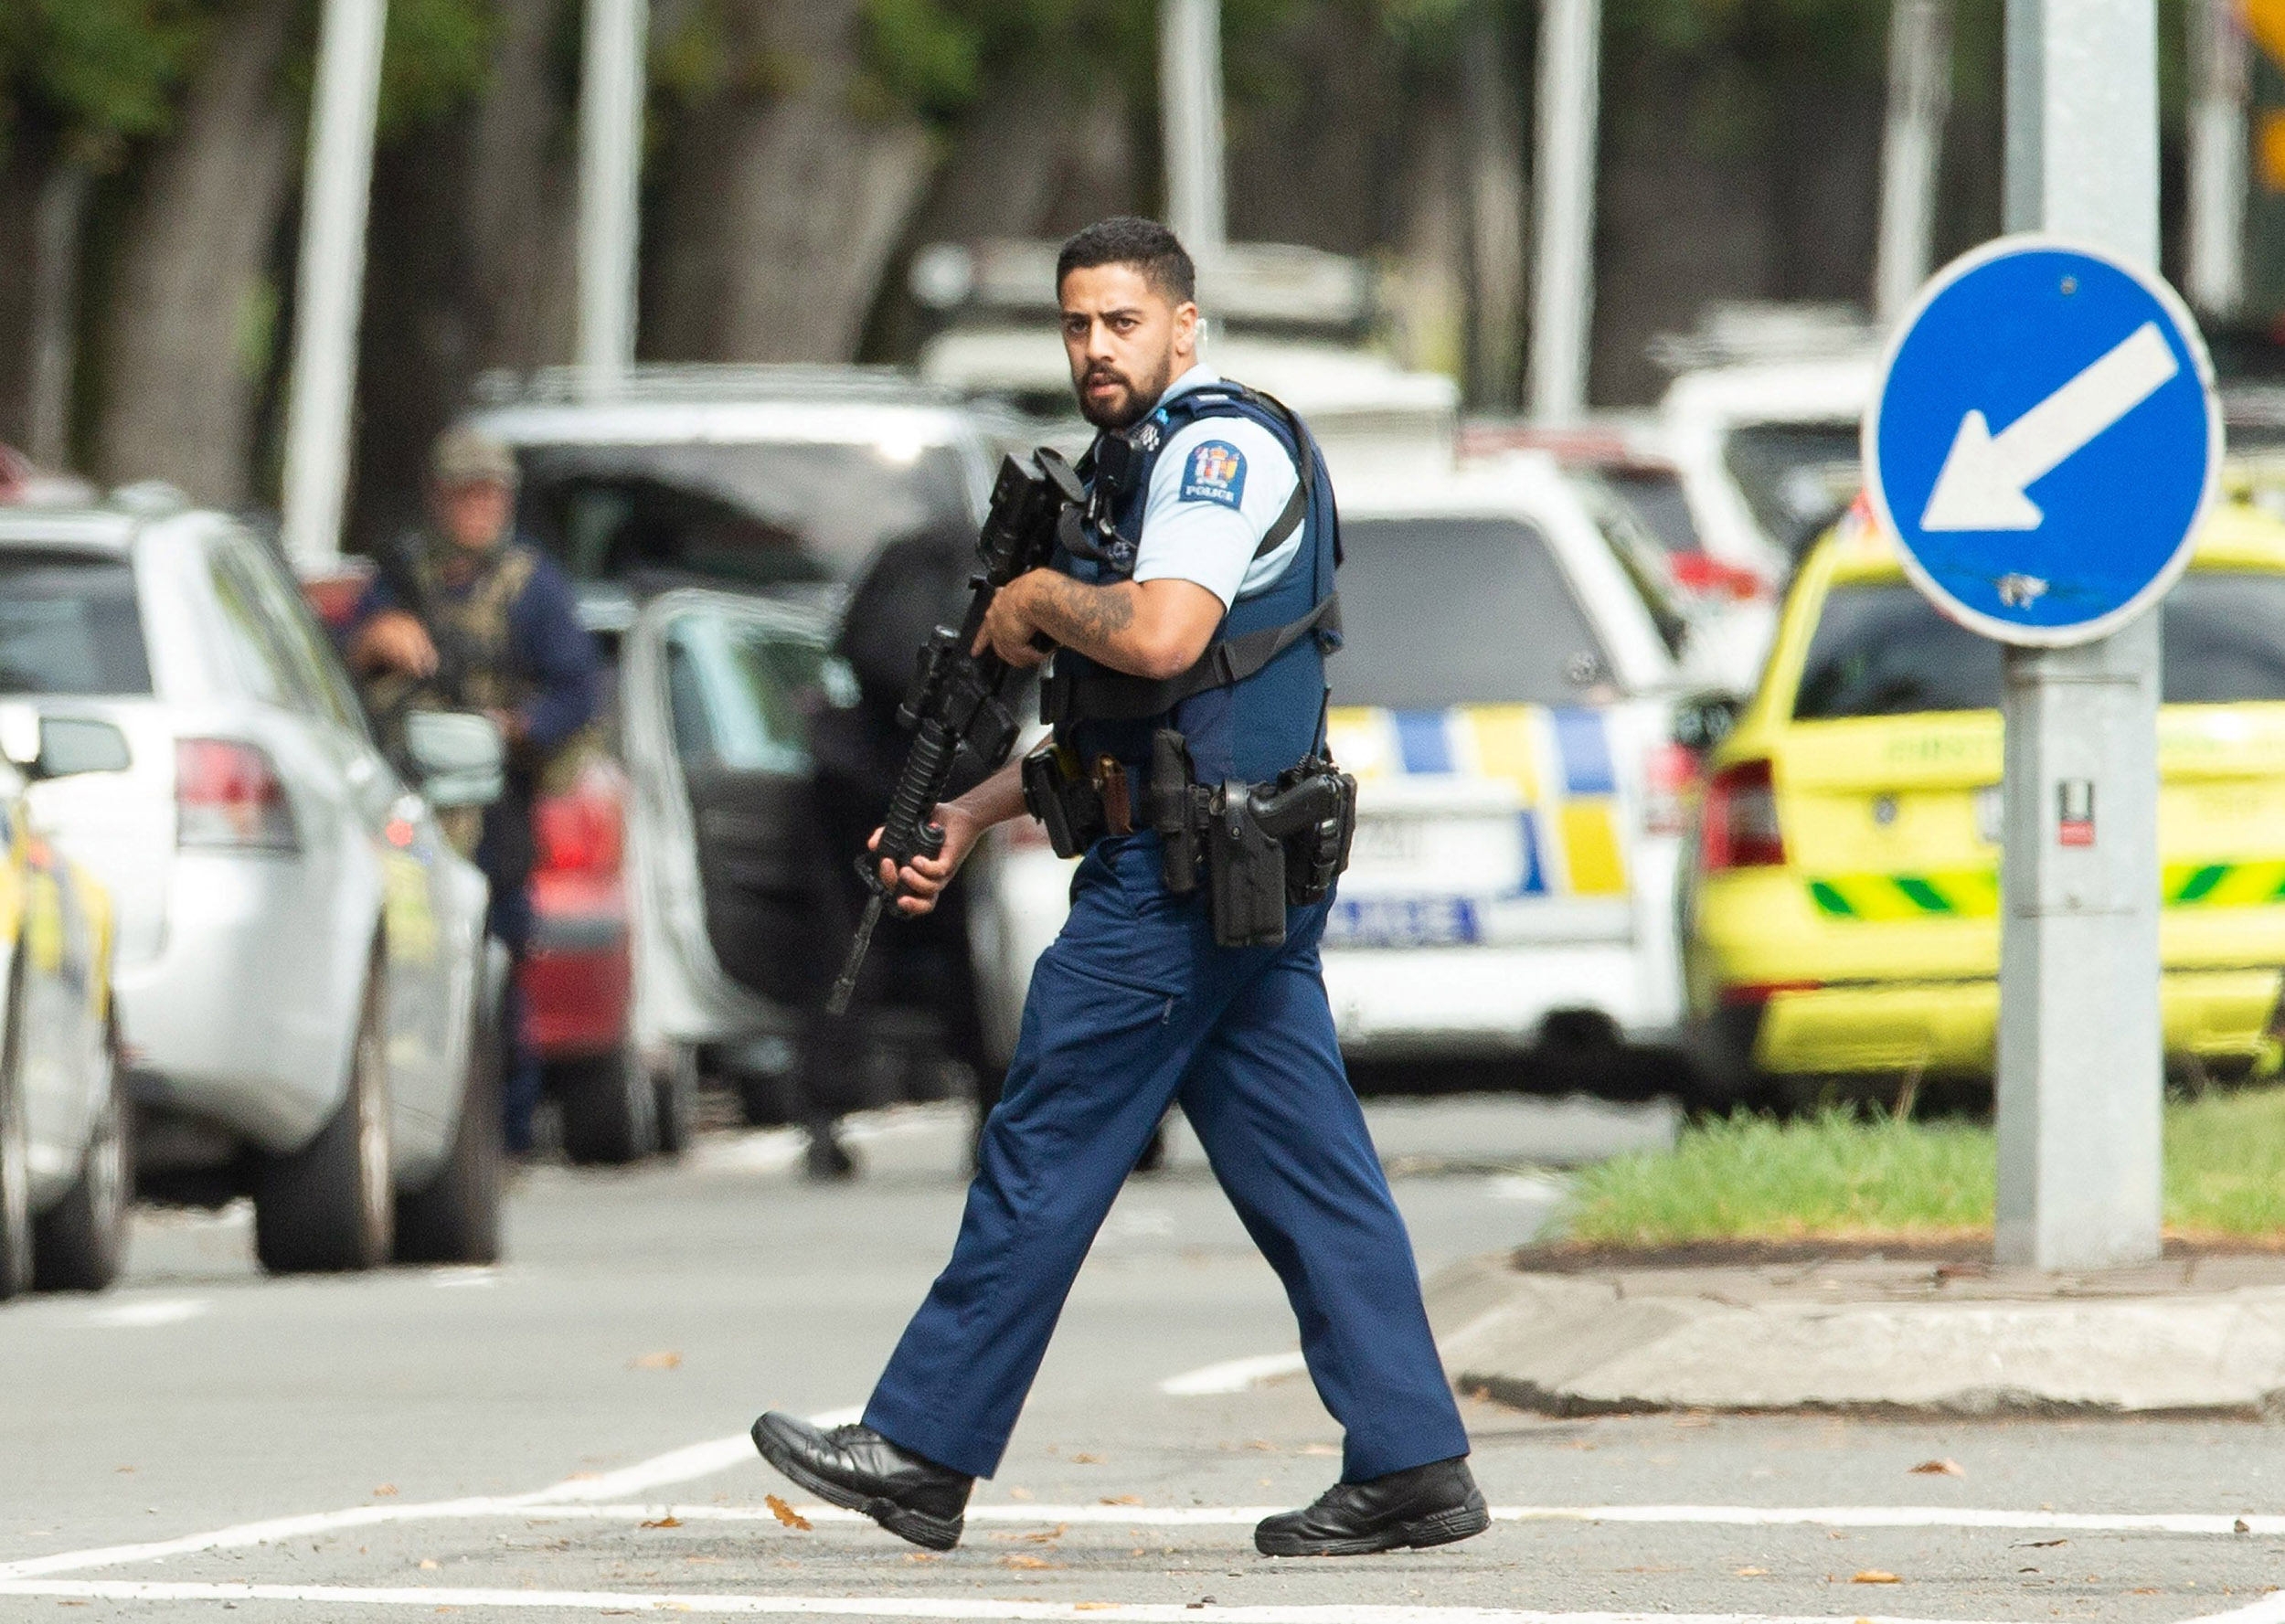 Mosque-terrorist-may-have-targeted-New-Zealand-because-it's-so-safe